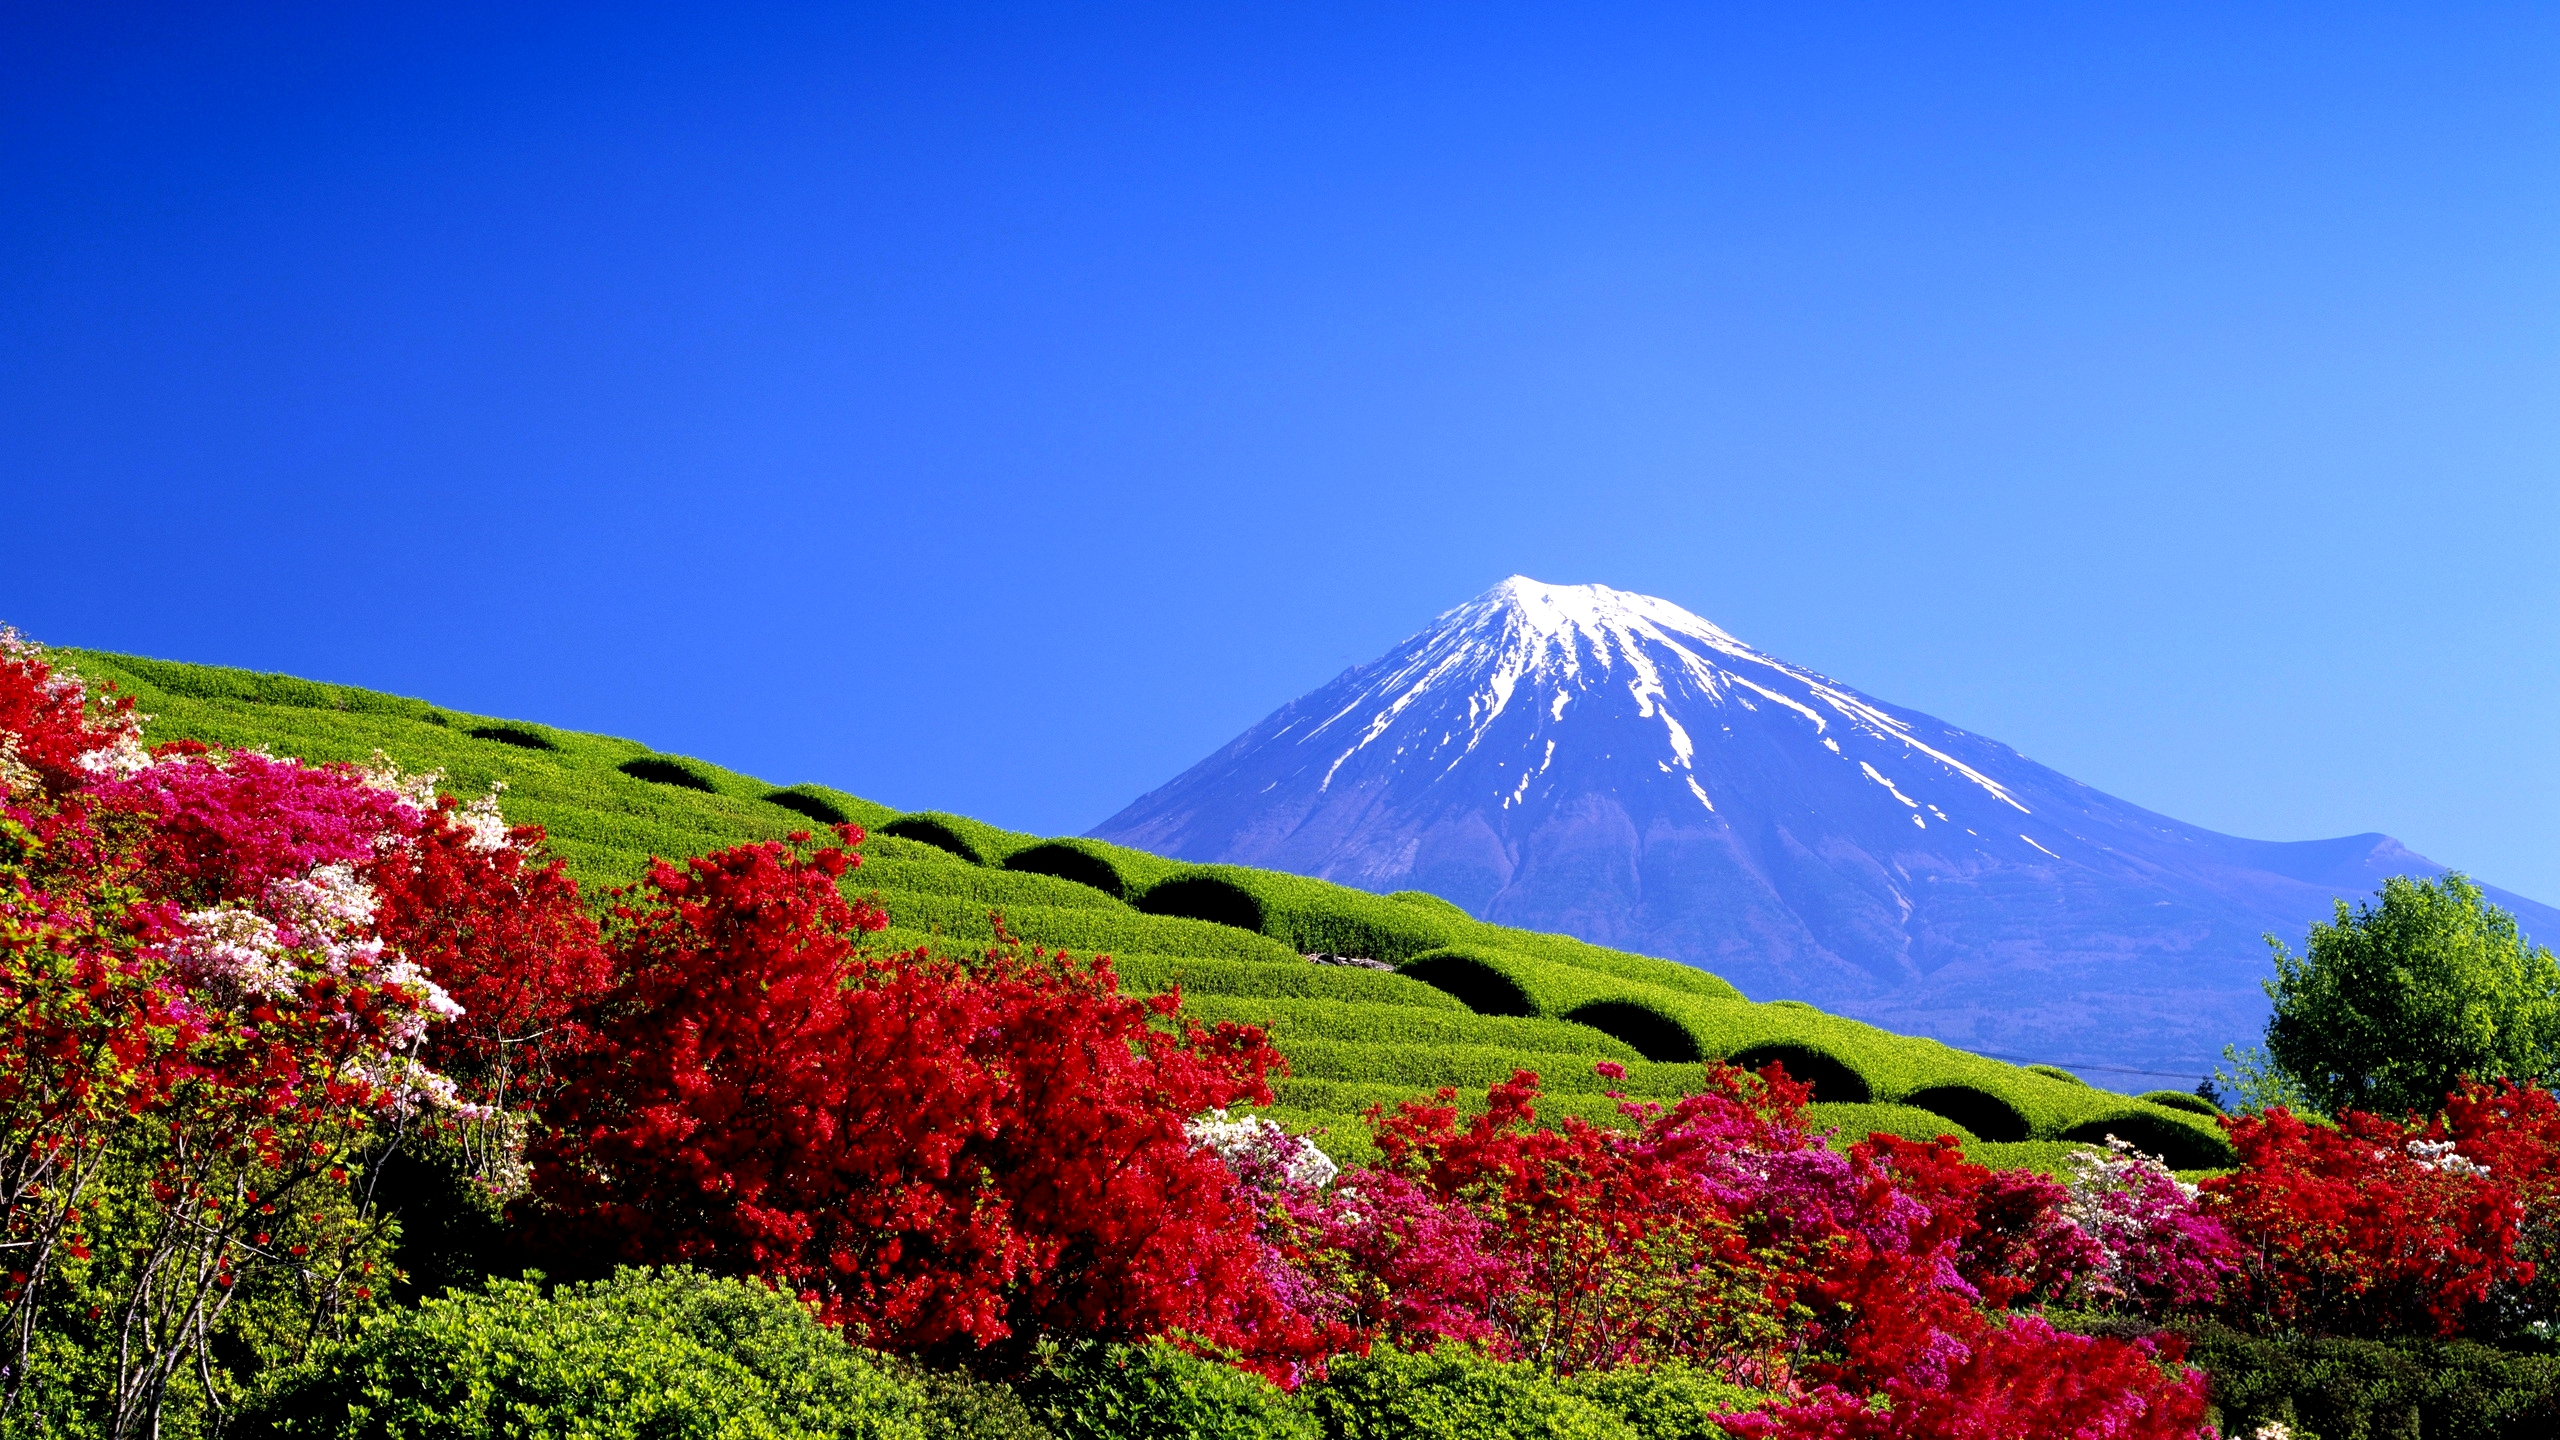 download flowers beautiful springtime agriculture blue sky 2560x1440